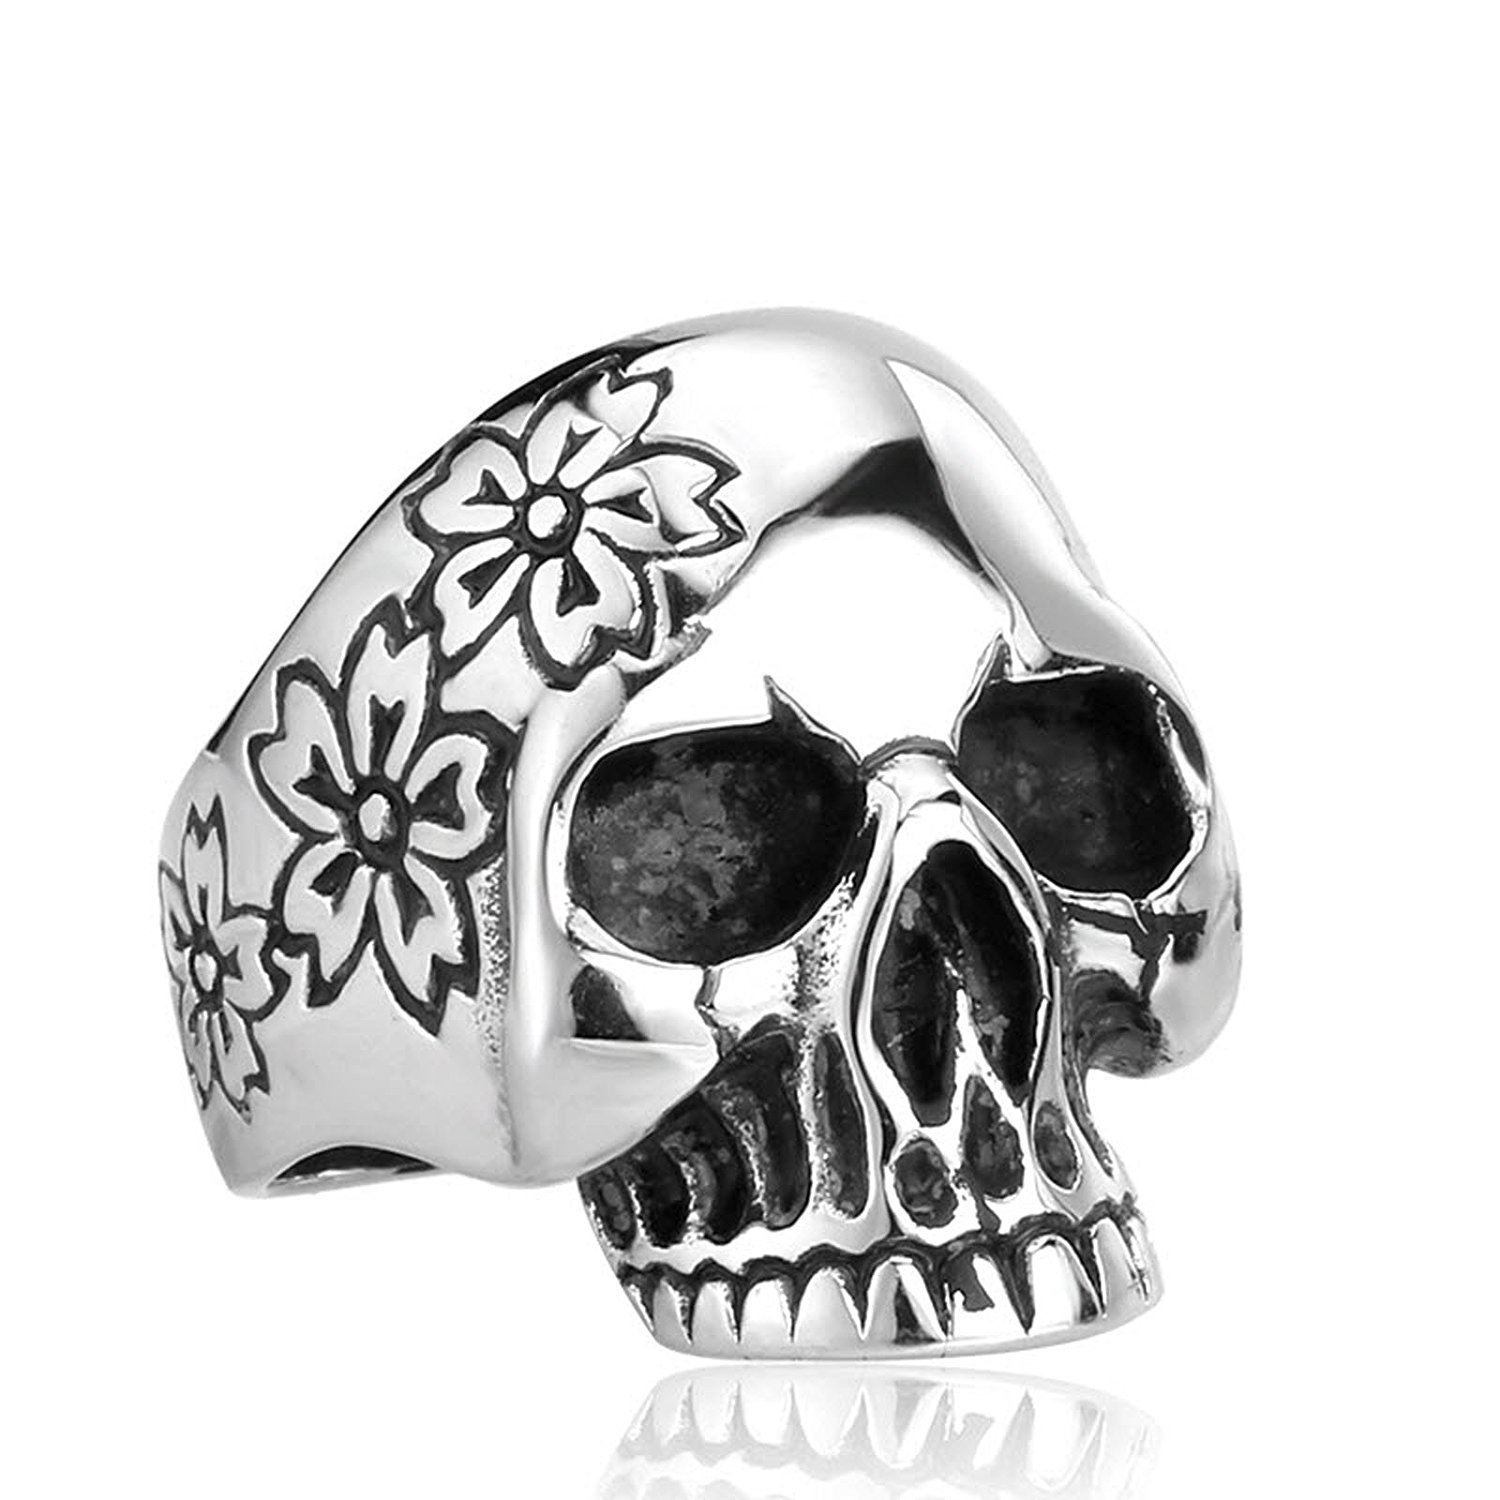 gothic colour ring co jewellery konov with stainless silver black amazon men vintage skeleton rings hand uk size gift skull s dp p steel bag